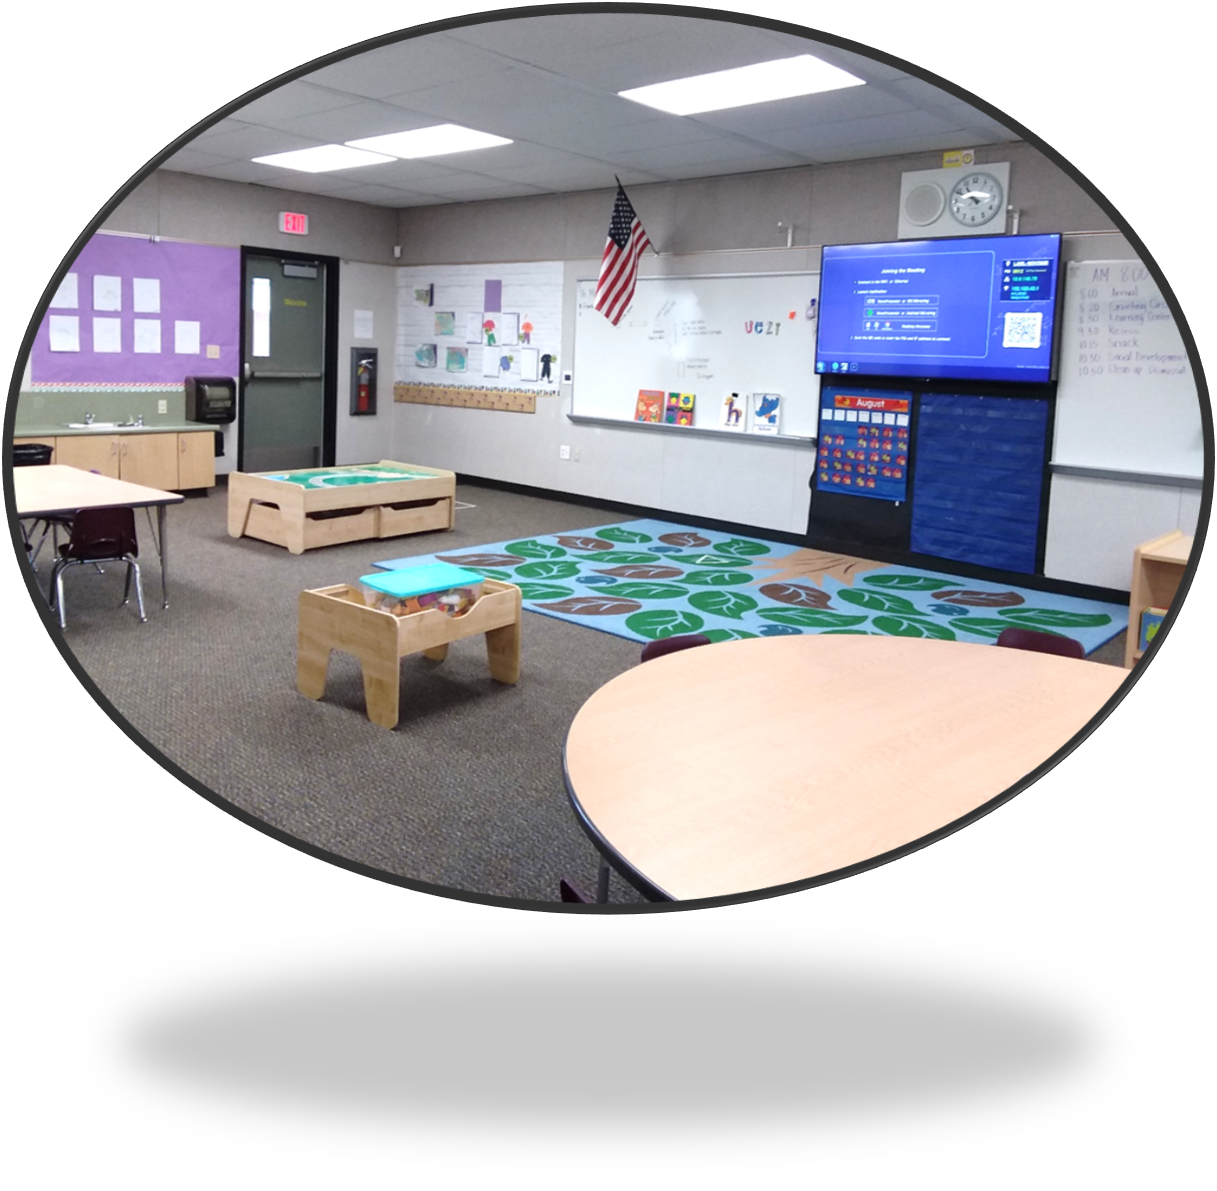 Picture of front of classroom